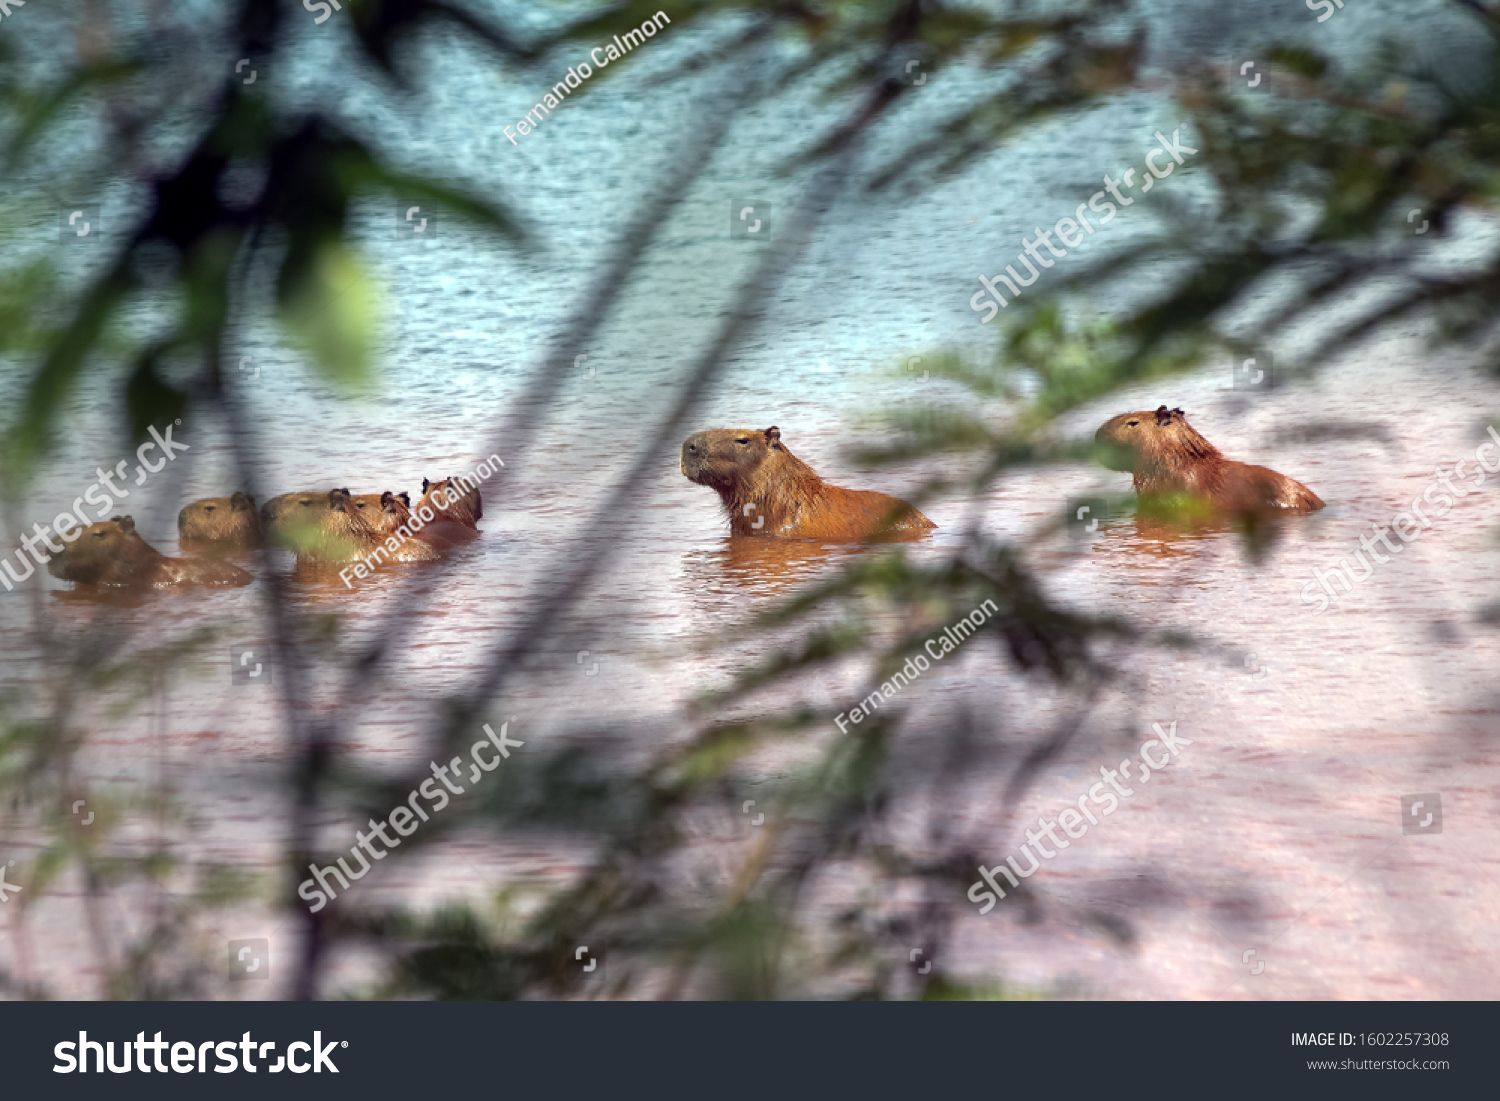 Among the bushes, a capybara family enjoys the sun and waters of Lake Parano¨¢ in Brasilia, Brazil. The capybara is the largest rodent in the world. Species Hydrochoerus hydrochaeris. Animal life. #Ad , #spon, #Lake#waters#Brasilia#Parano